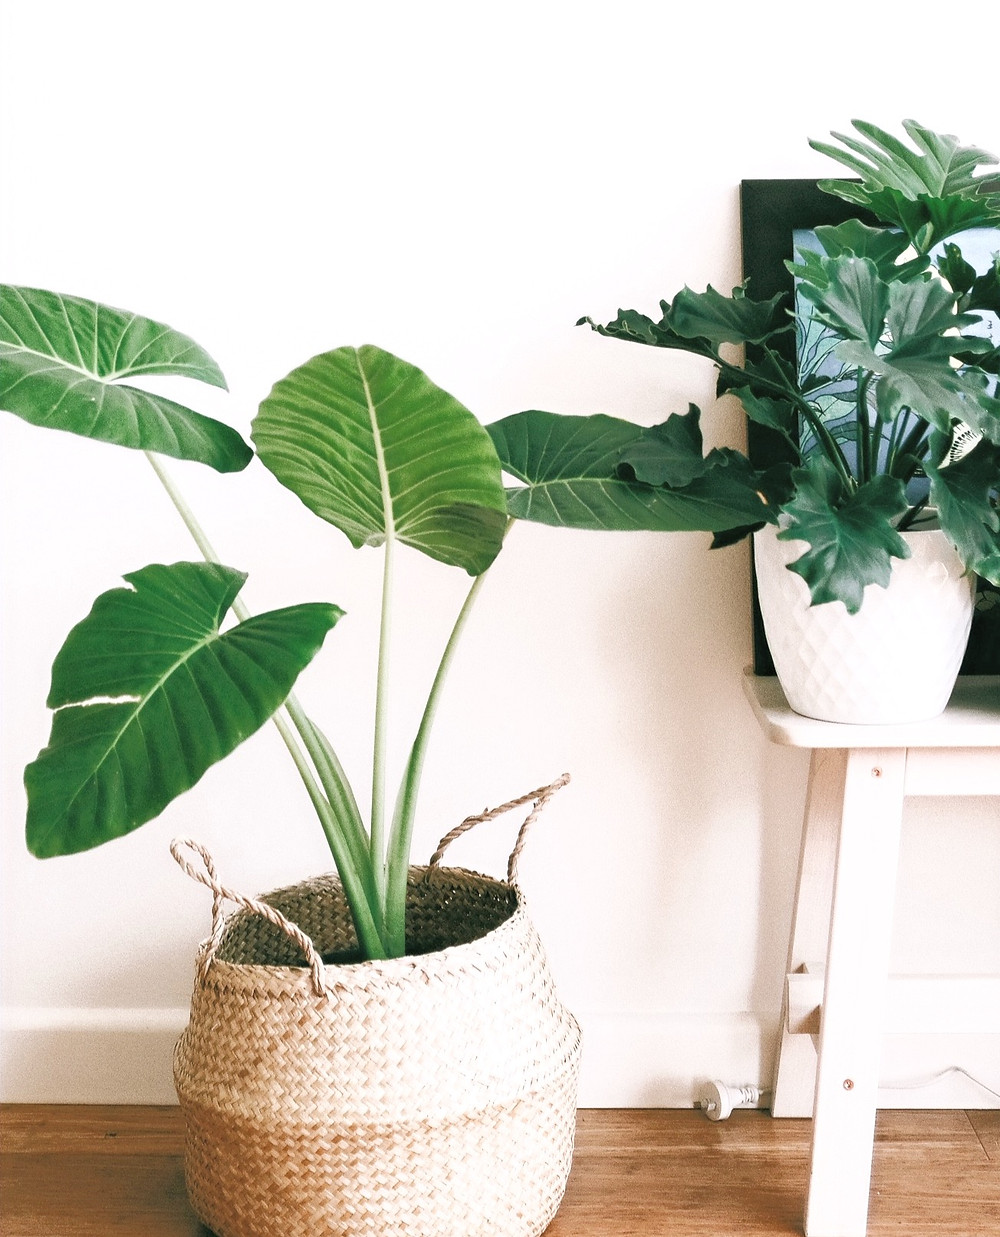 Modern leafy tropical indoor plants in boho basket.